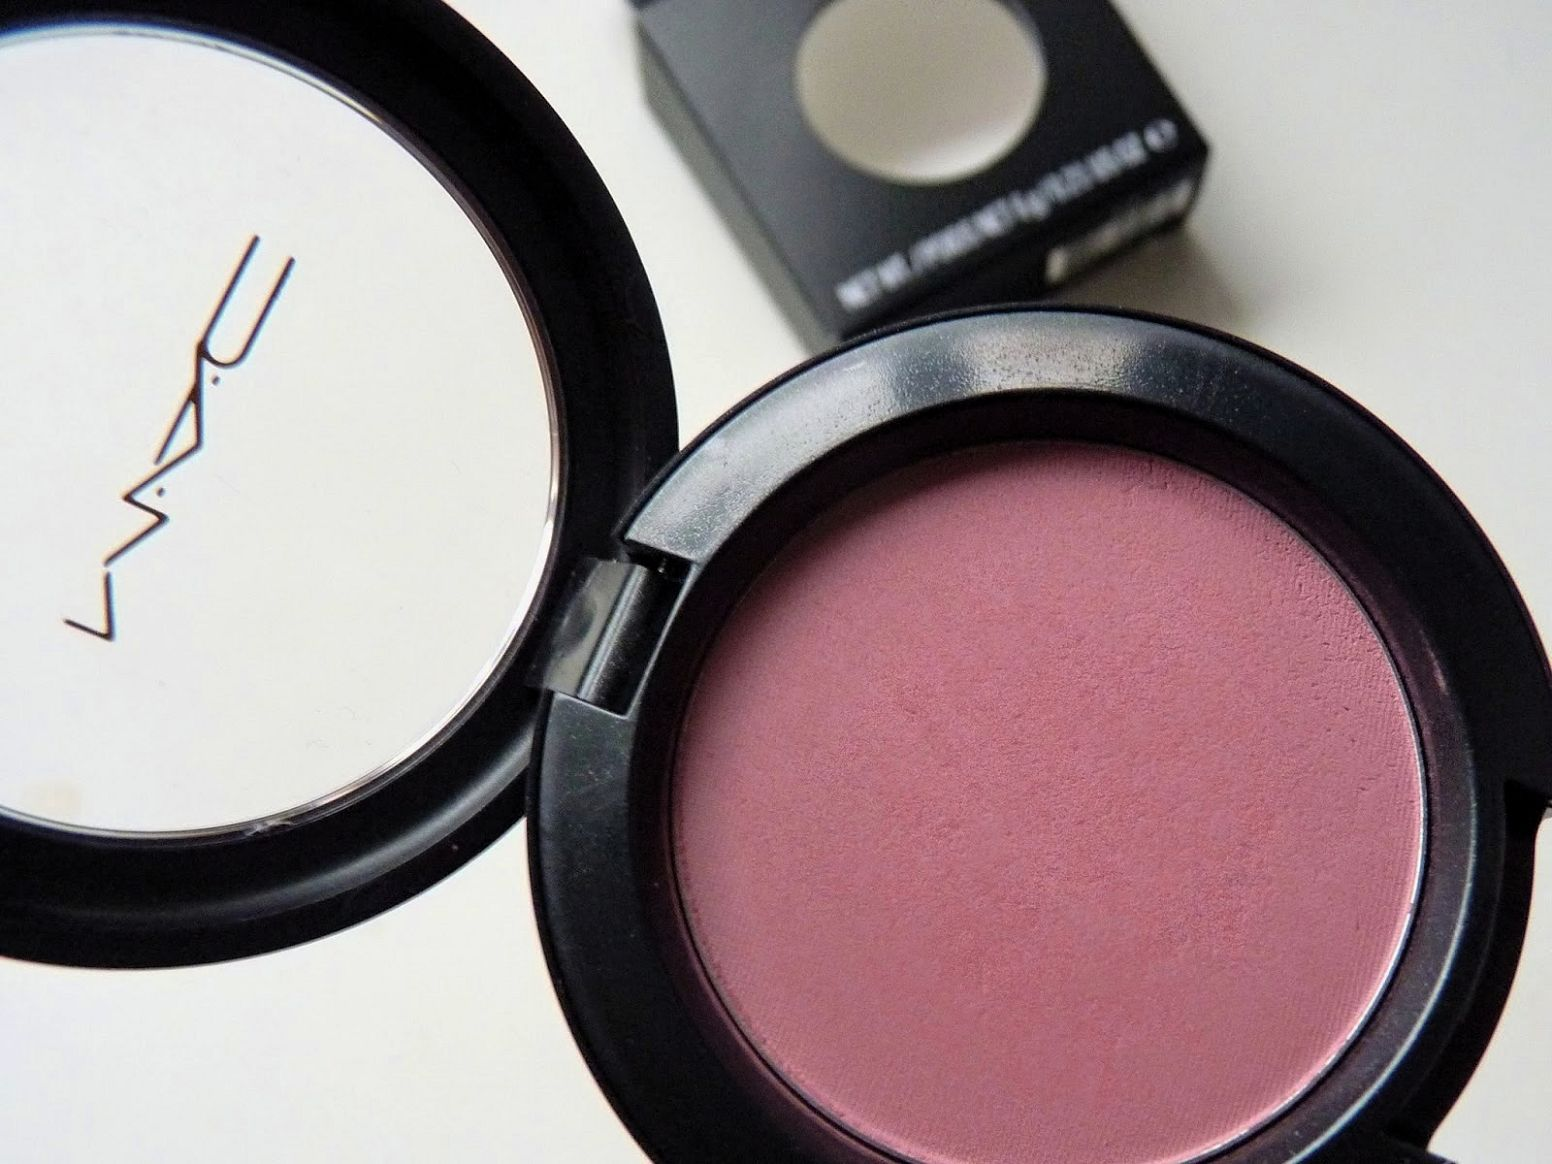 M.A.C Makeup Best For Your Beautiful Life,Now,We Have MAC